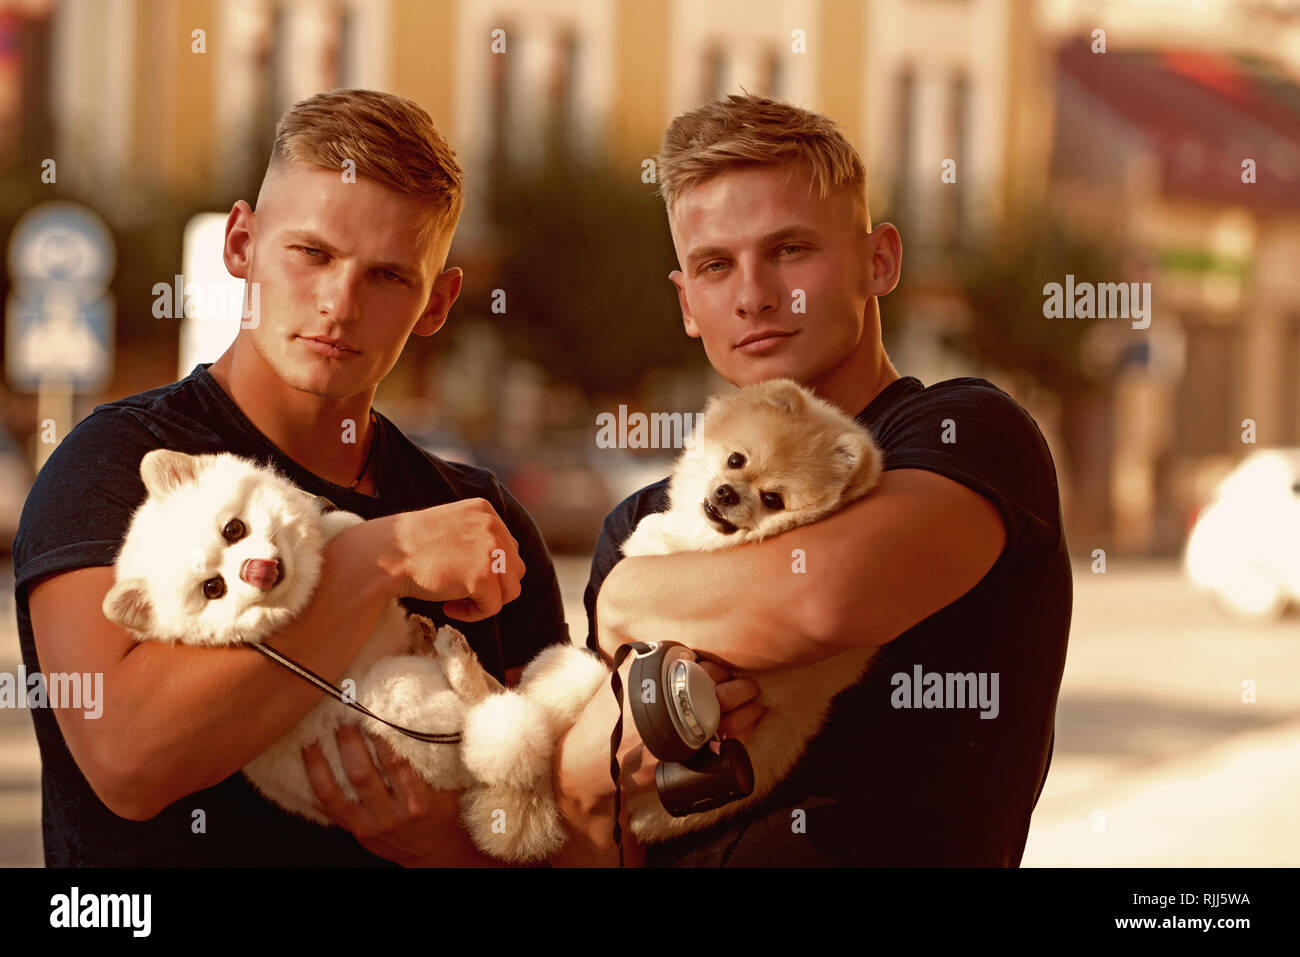 Always carrying about each other. Twins men hold pedigree dogs. Spitz dogs love the company of their family. Muscular men with dog pets. Happy twins - Stock Image